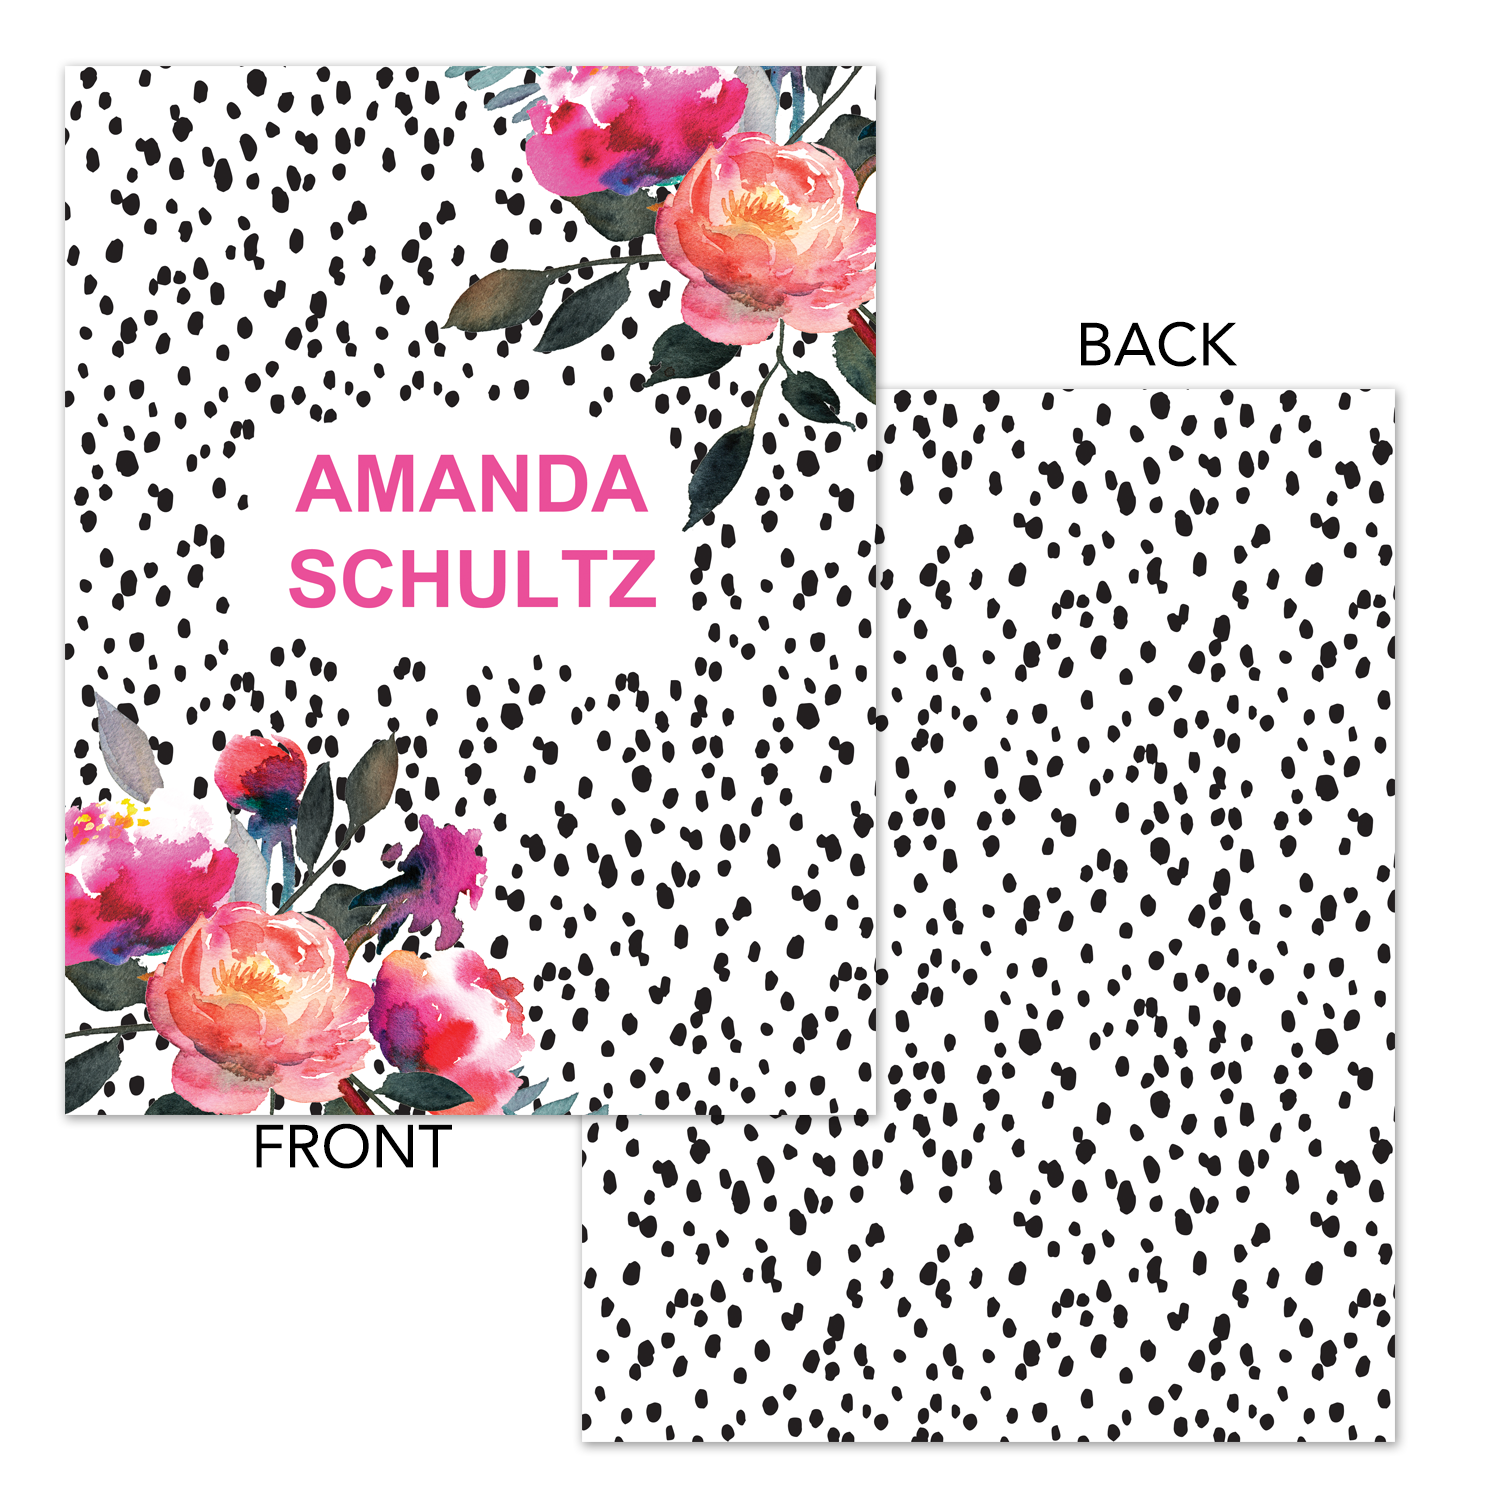 graphic about Planner Cover Printable named Noticed Floral Printable Binder Go over - Planner Deal with